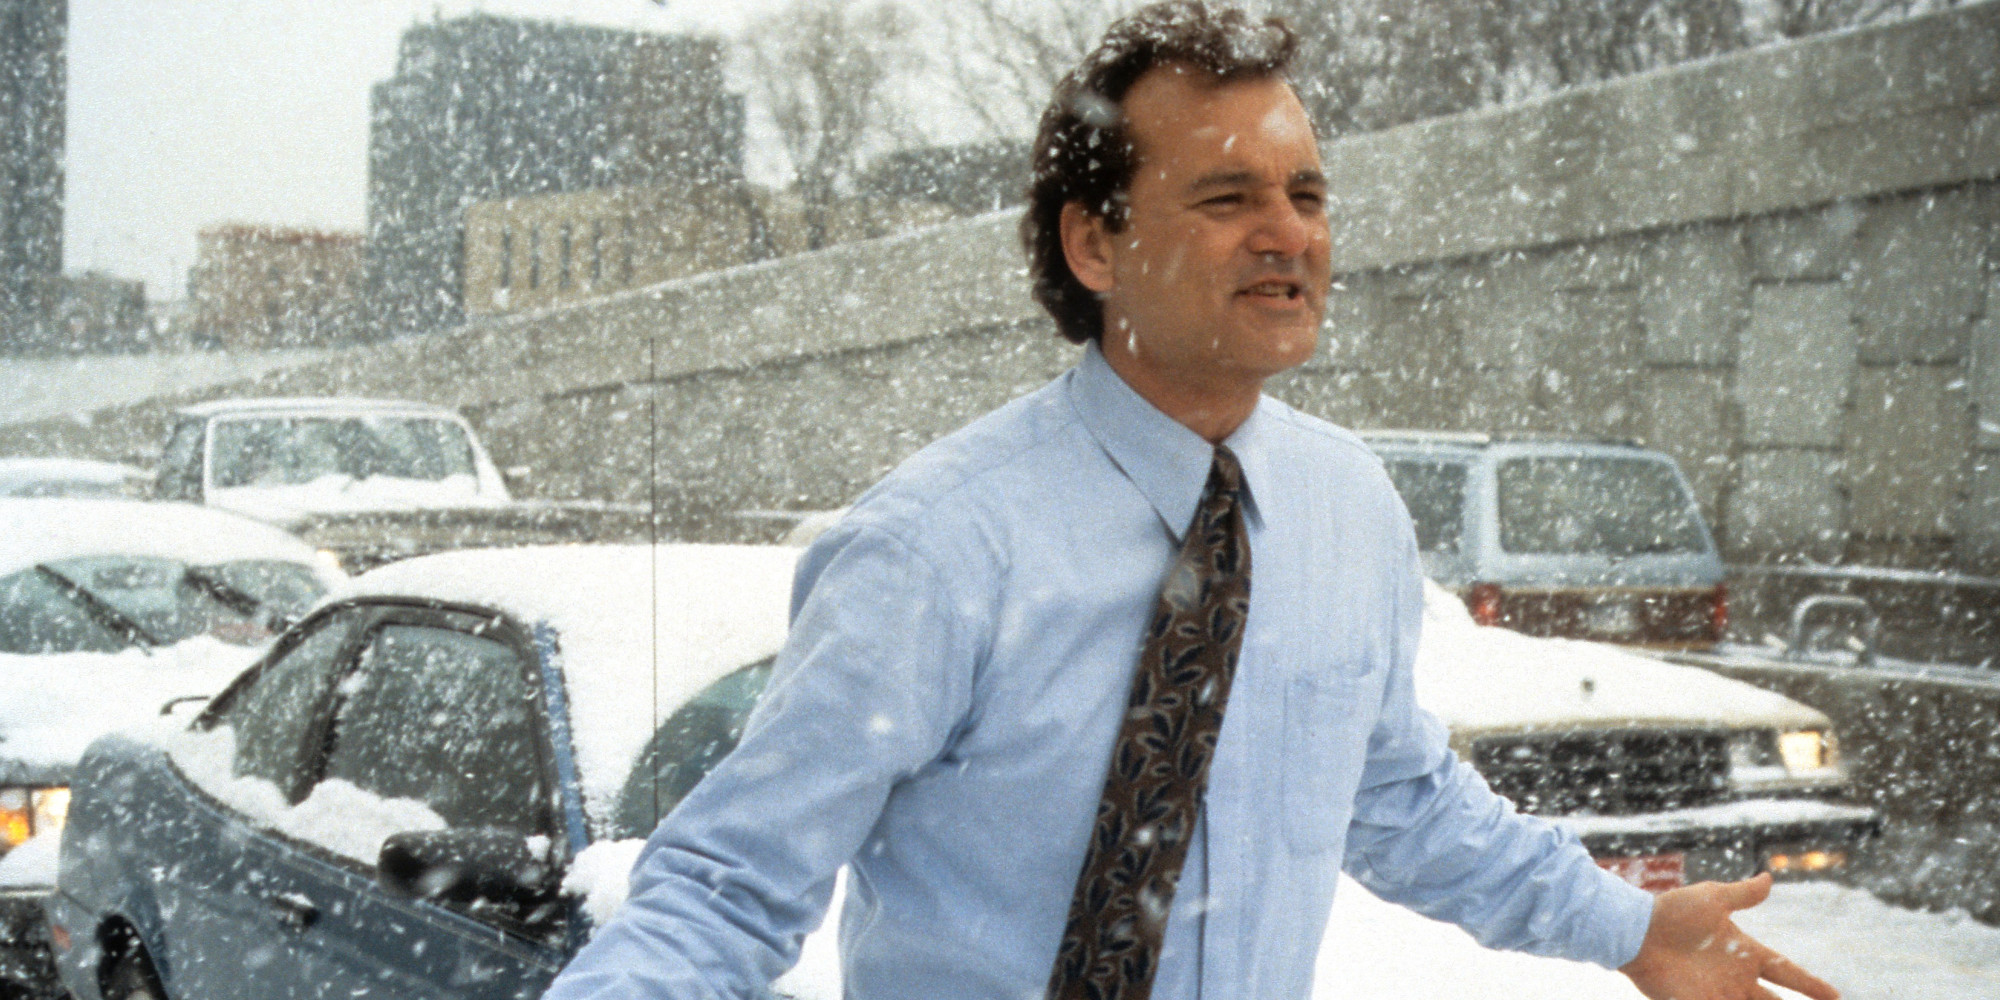 Groundhog Day Movie Quotes 8 Quotes To Make You Glad You Aren't Experiencing The Same